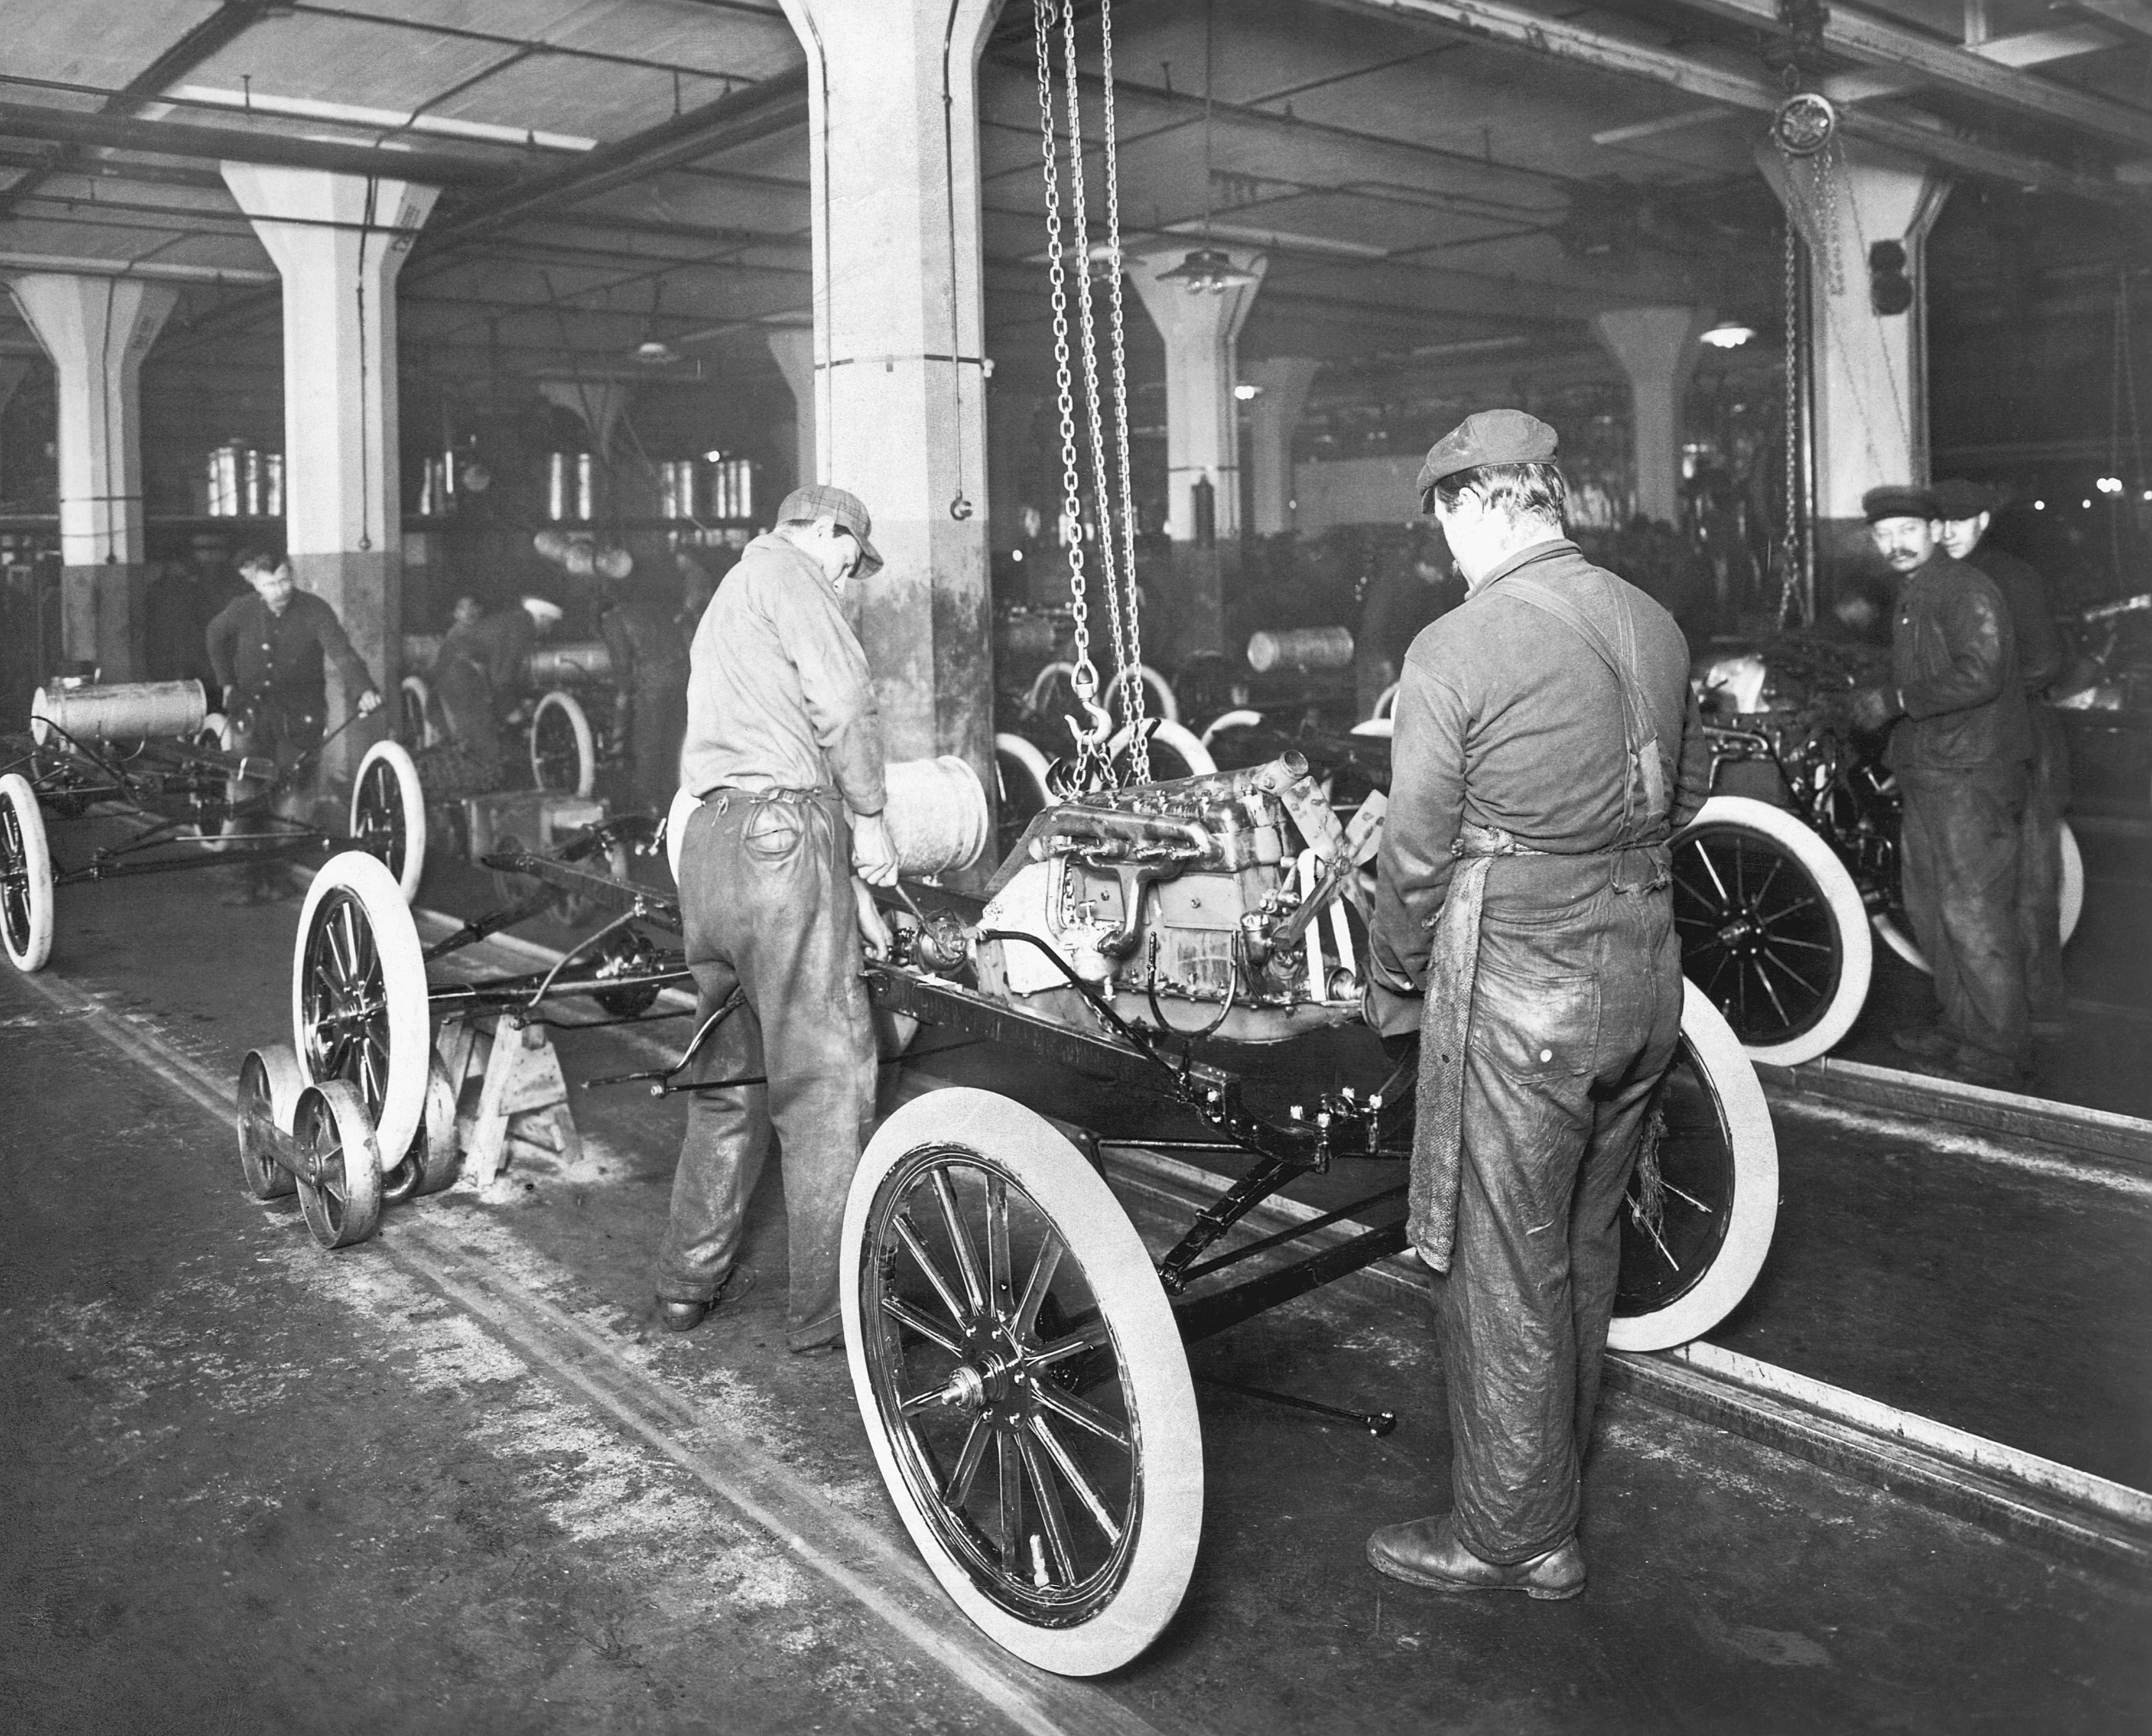 Factory workers on the Model T assembly line at Ford circa 1913.